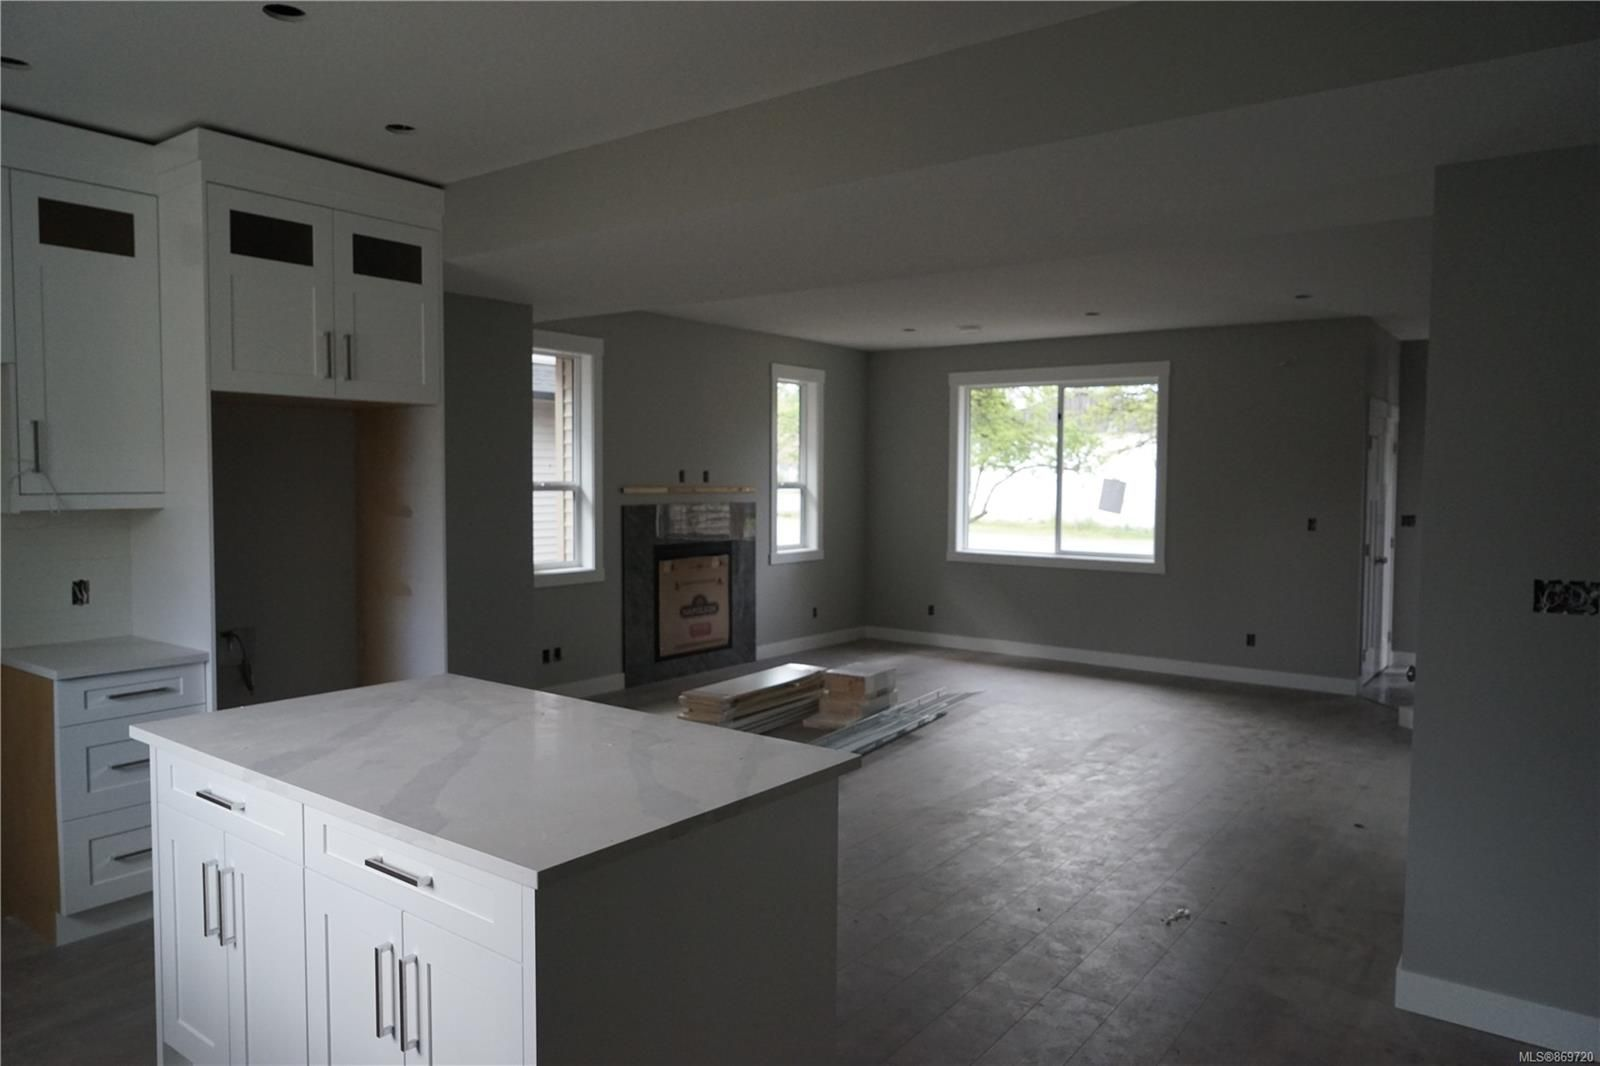 Photo 13: Photos: 770 Bruce Ave in : Na South Nanaimo House for sale (Nanaimo)  : MLS®# 869720